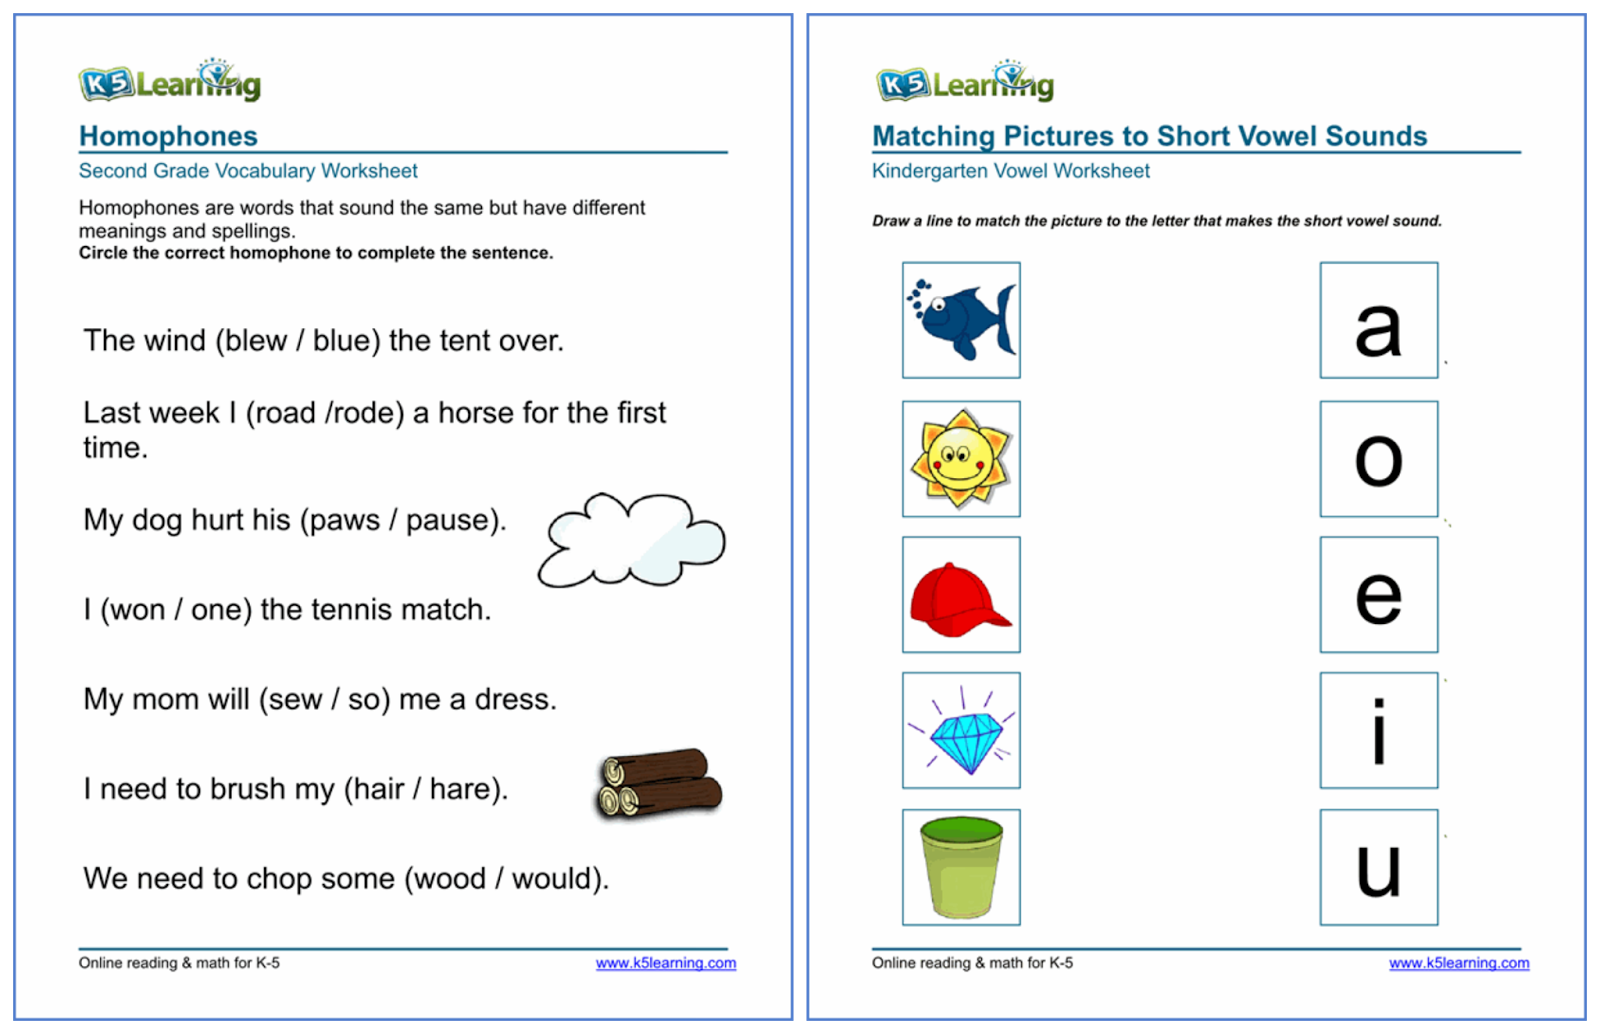 Online Math And Reading Enrichment Program For Kids K5